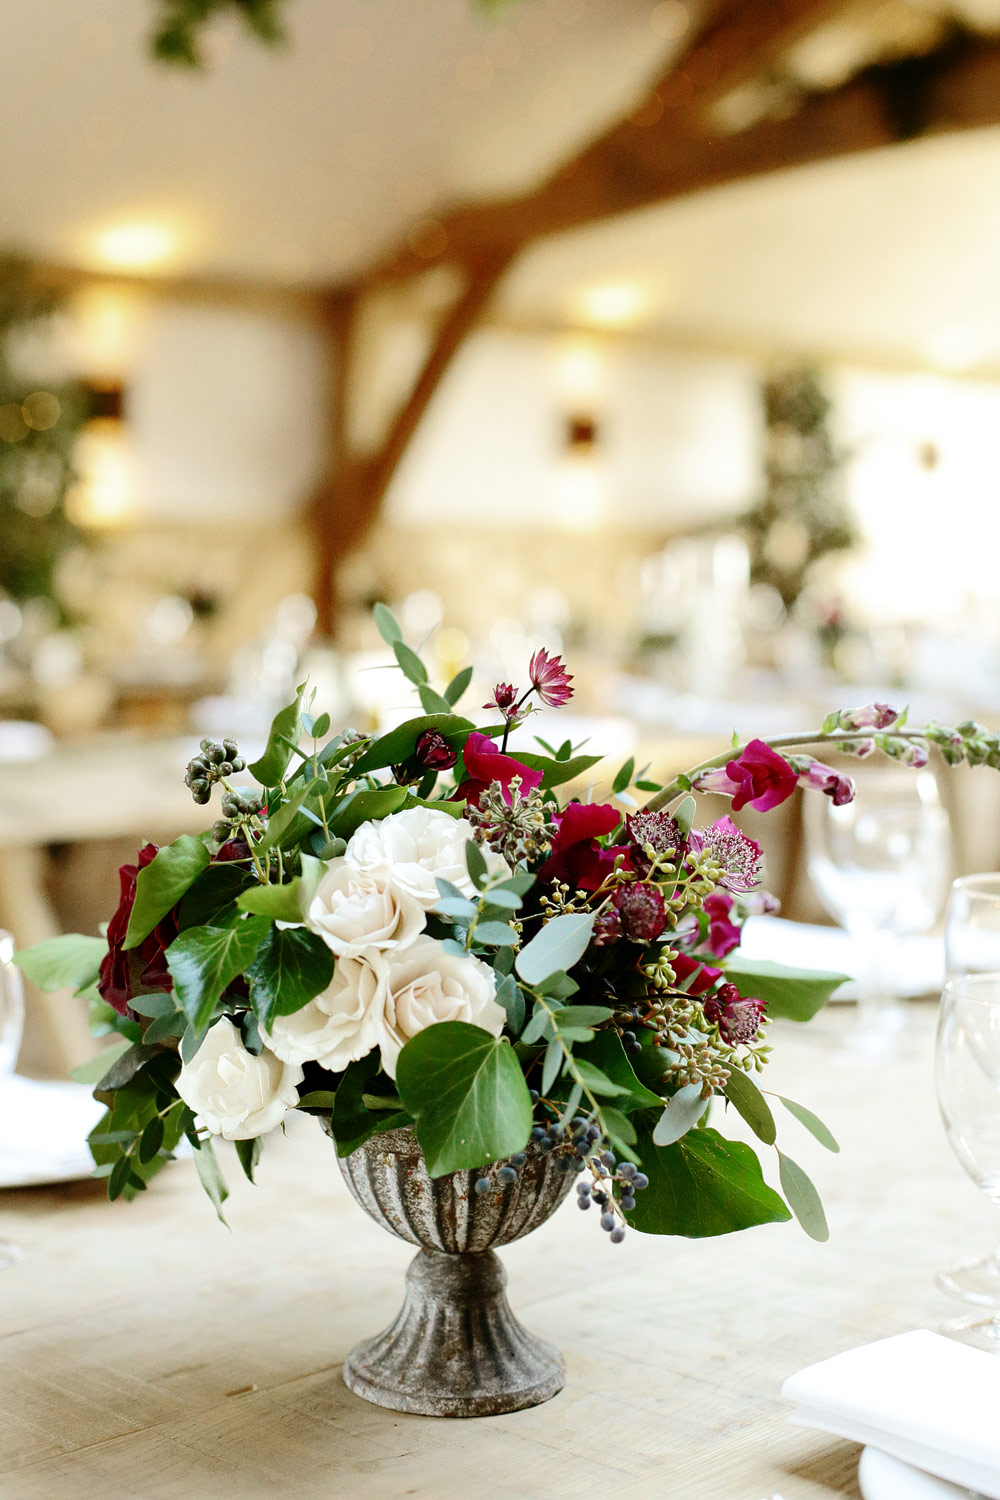 wedding florist Cripps barn Cotswolds